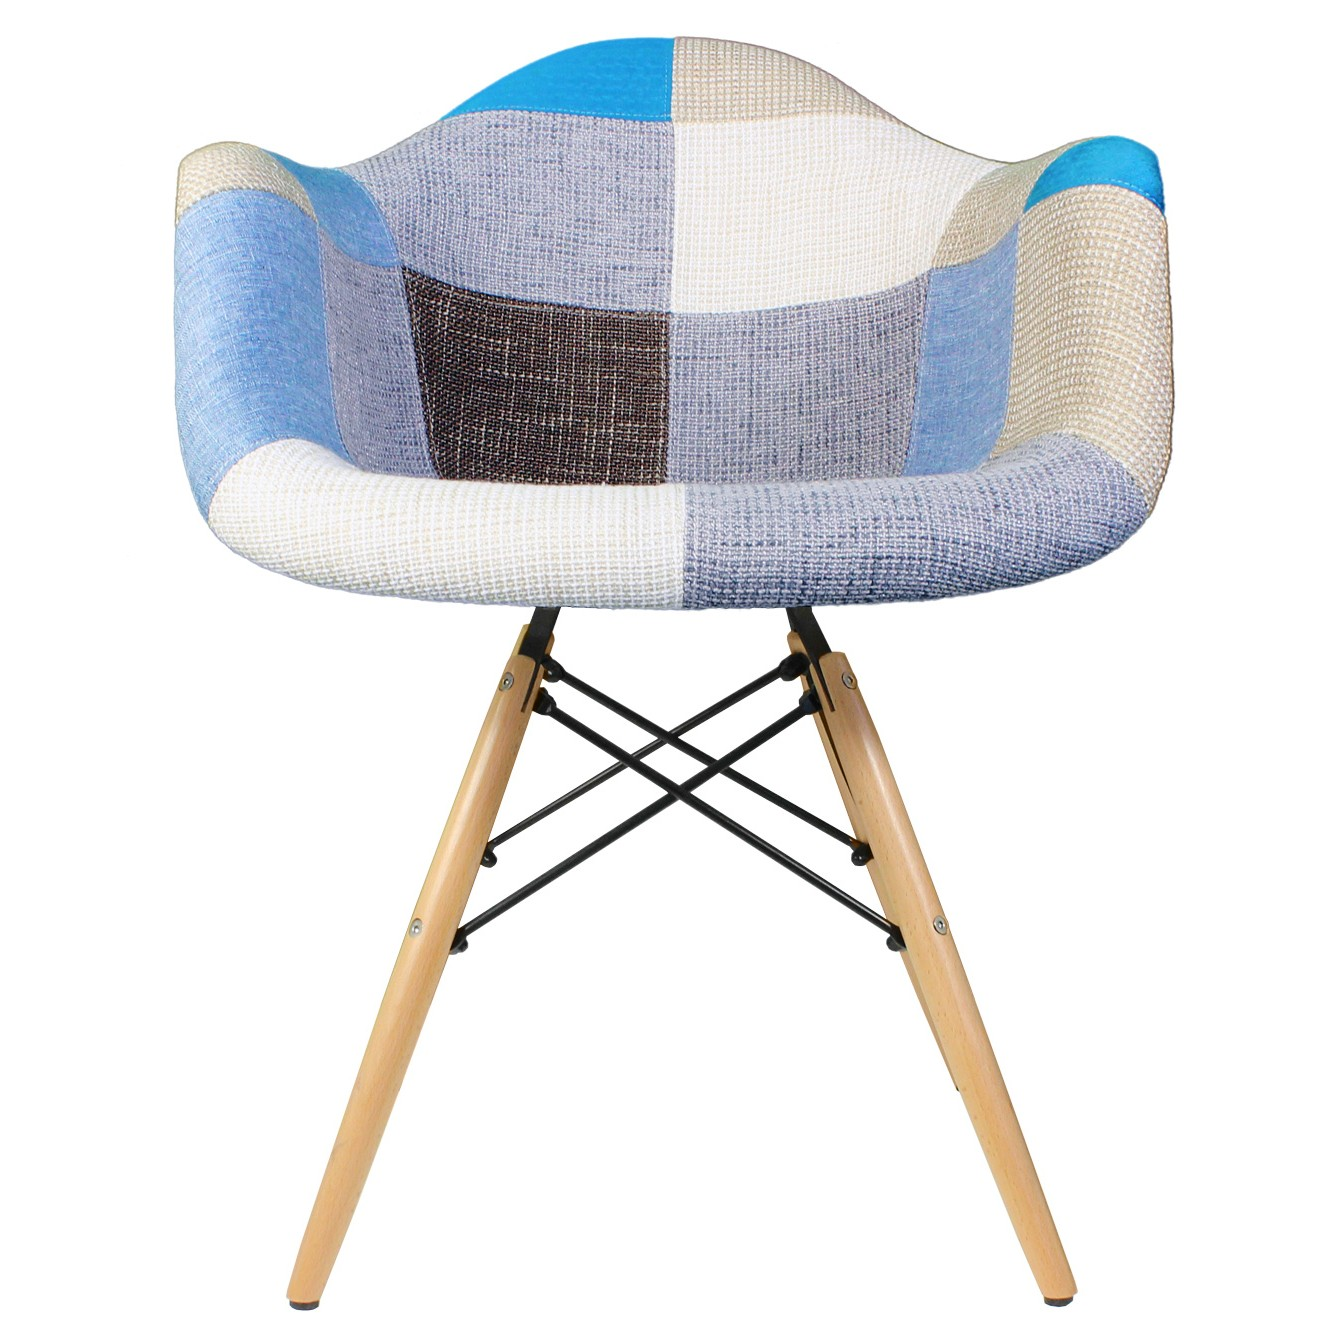 Patchwork fabric upholstered mid century eames style accent arm chair · display gallery item 1 · display gallery item 2